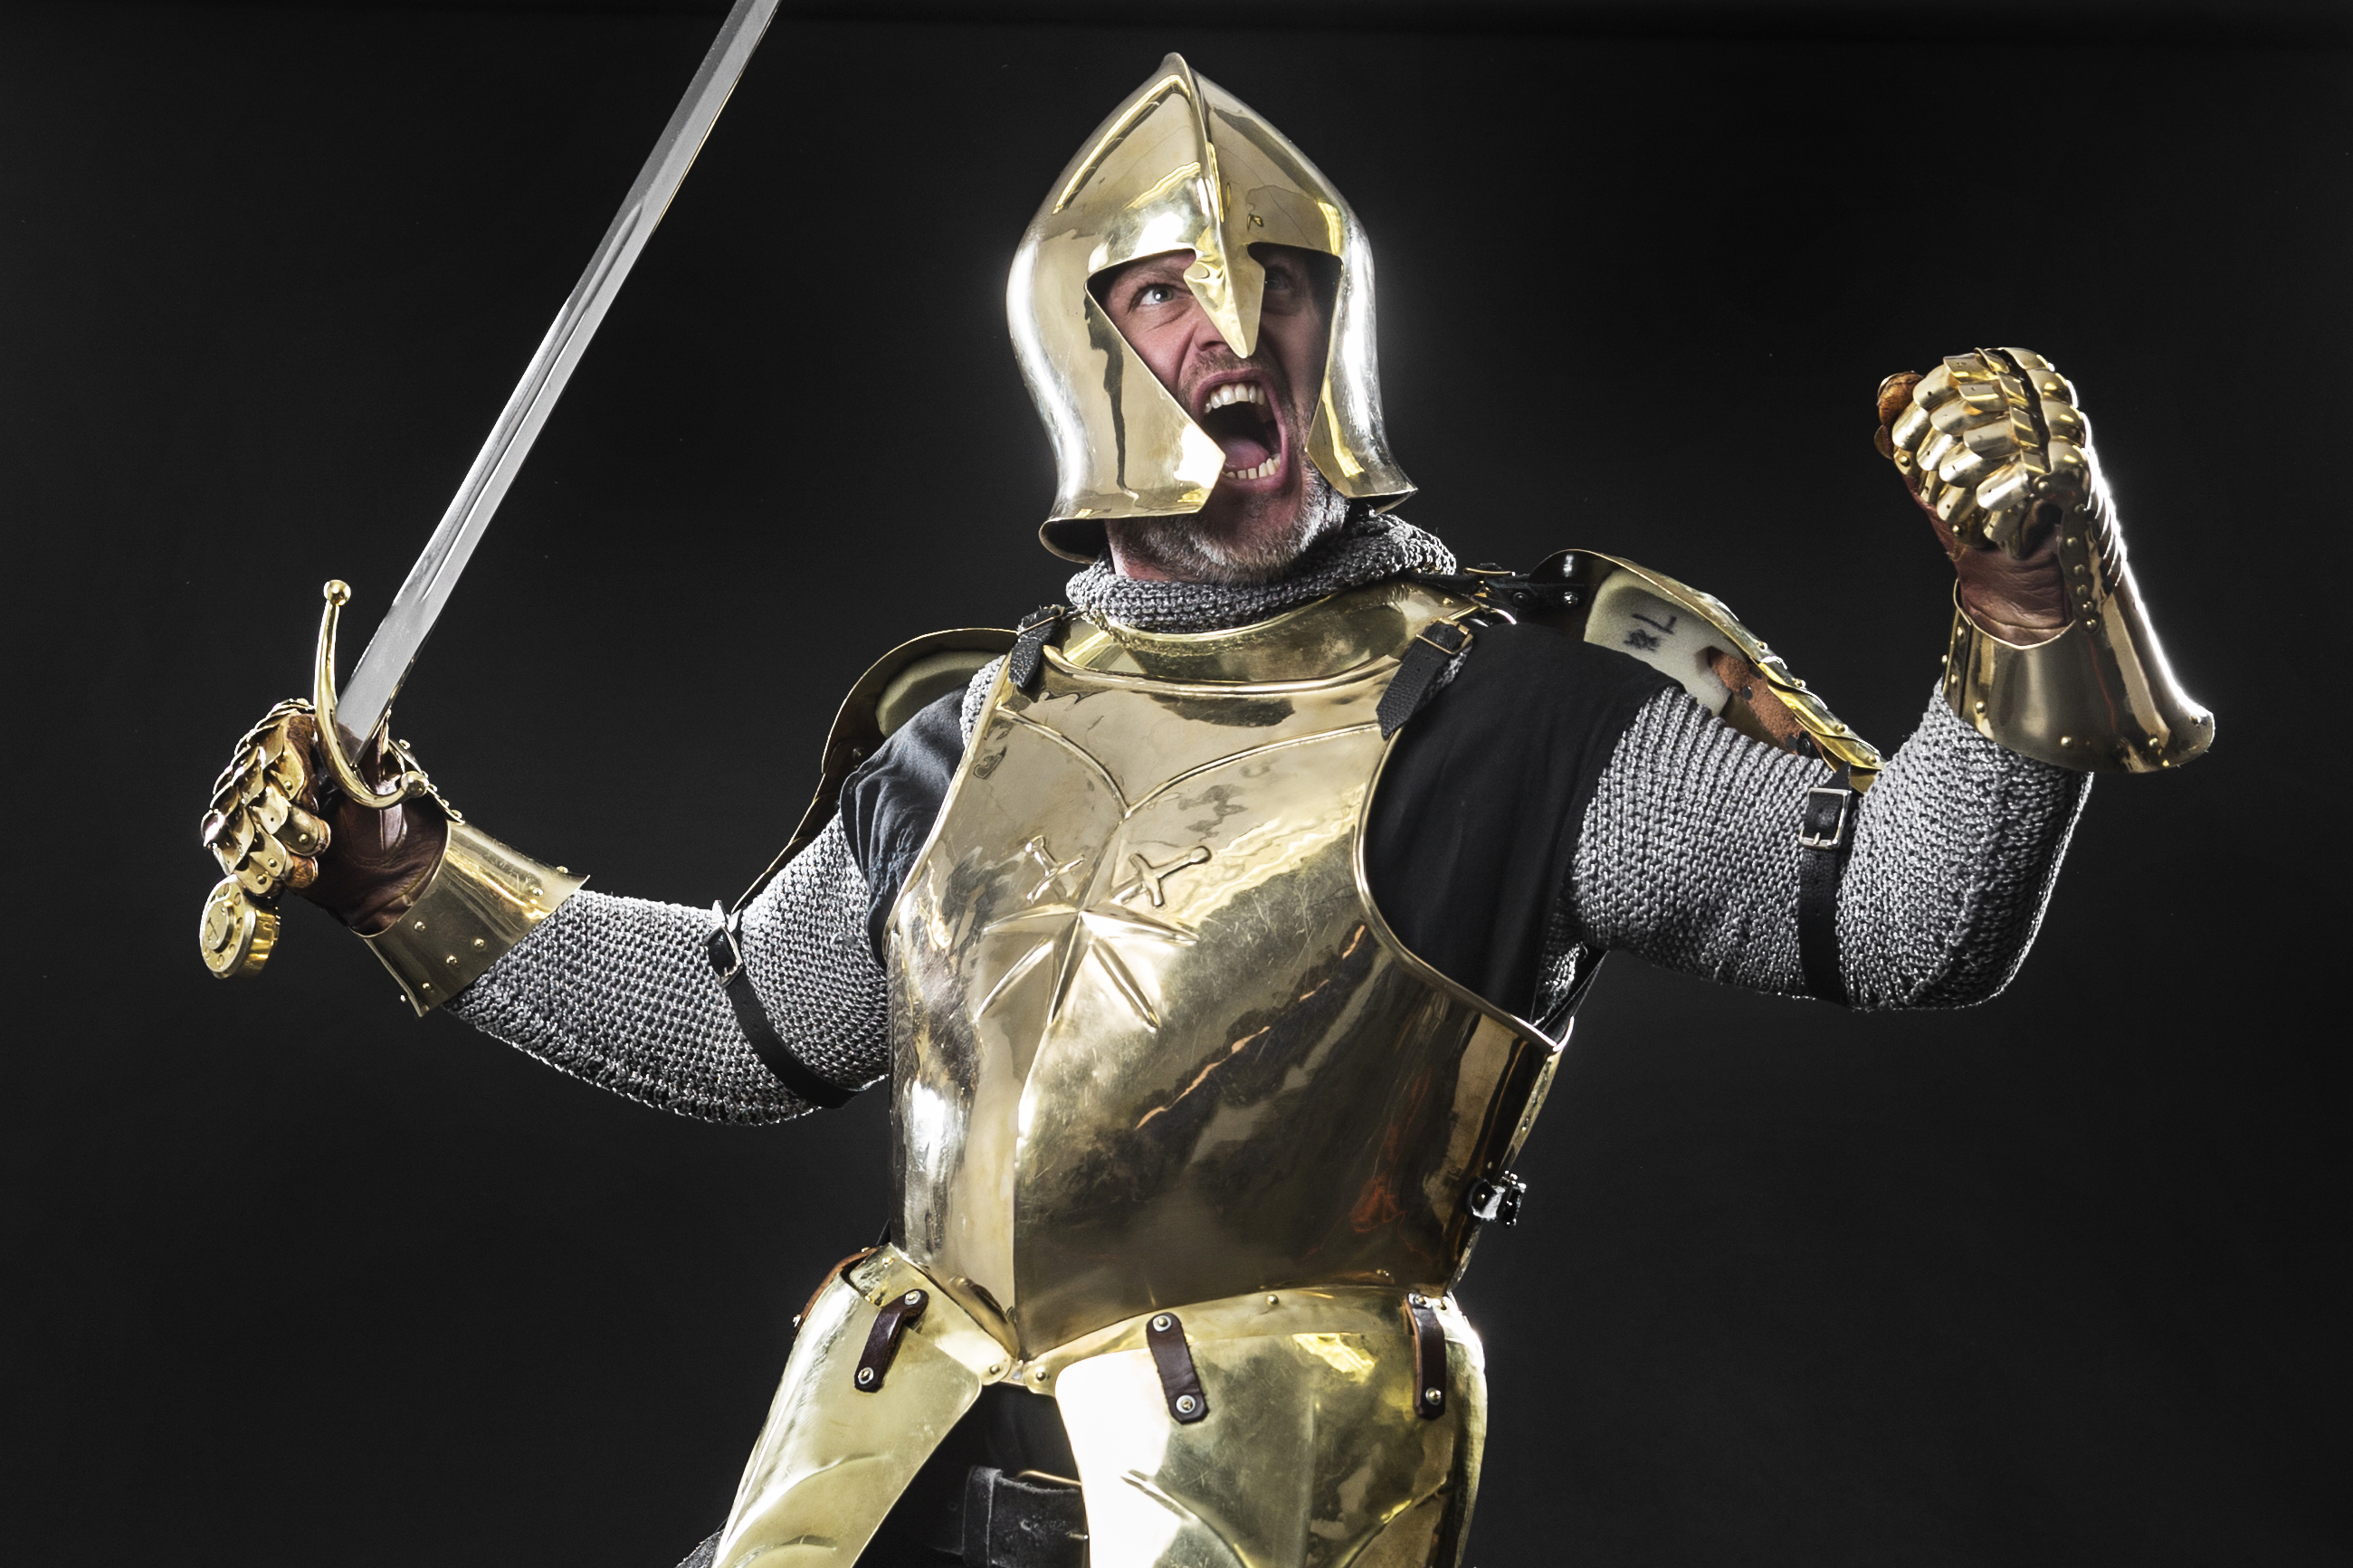 golden knight discusses love for team shooting tribute on armor